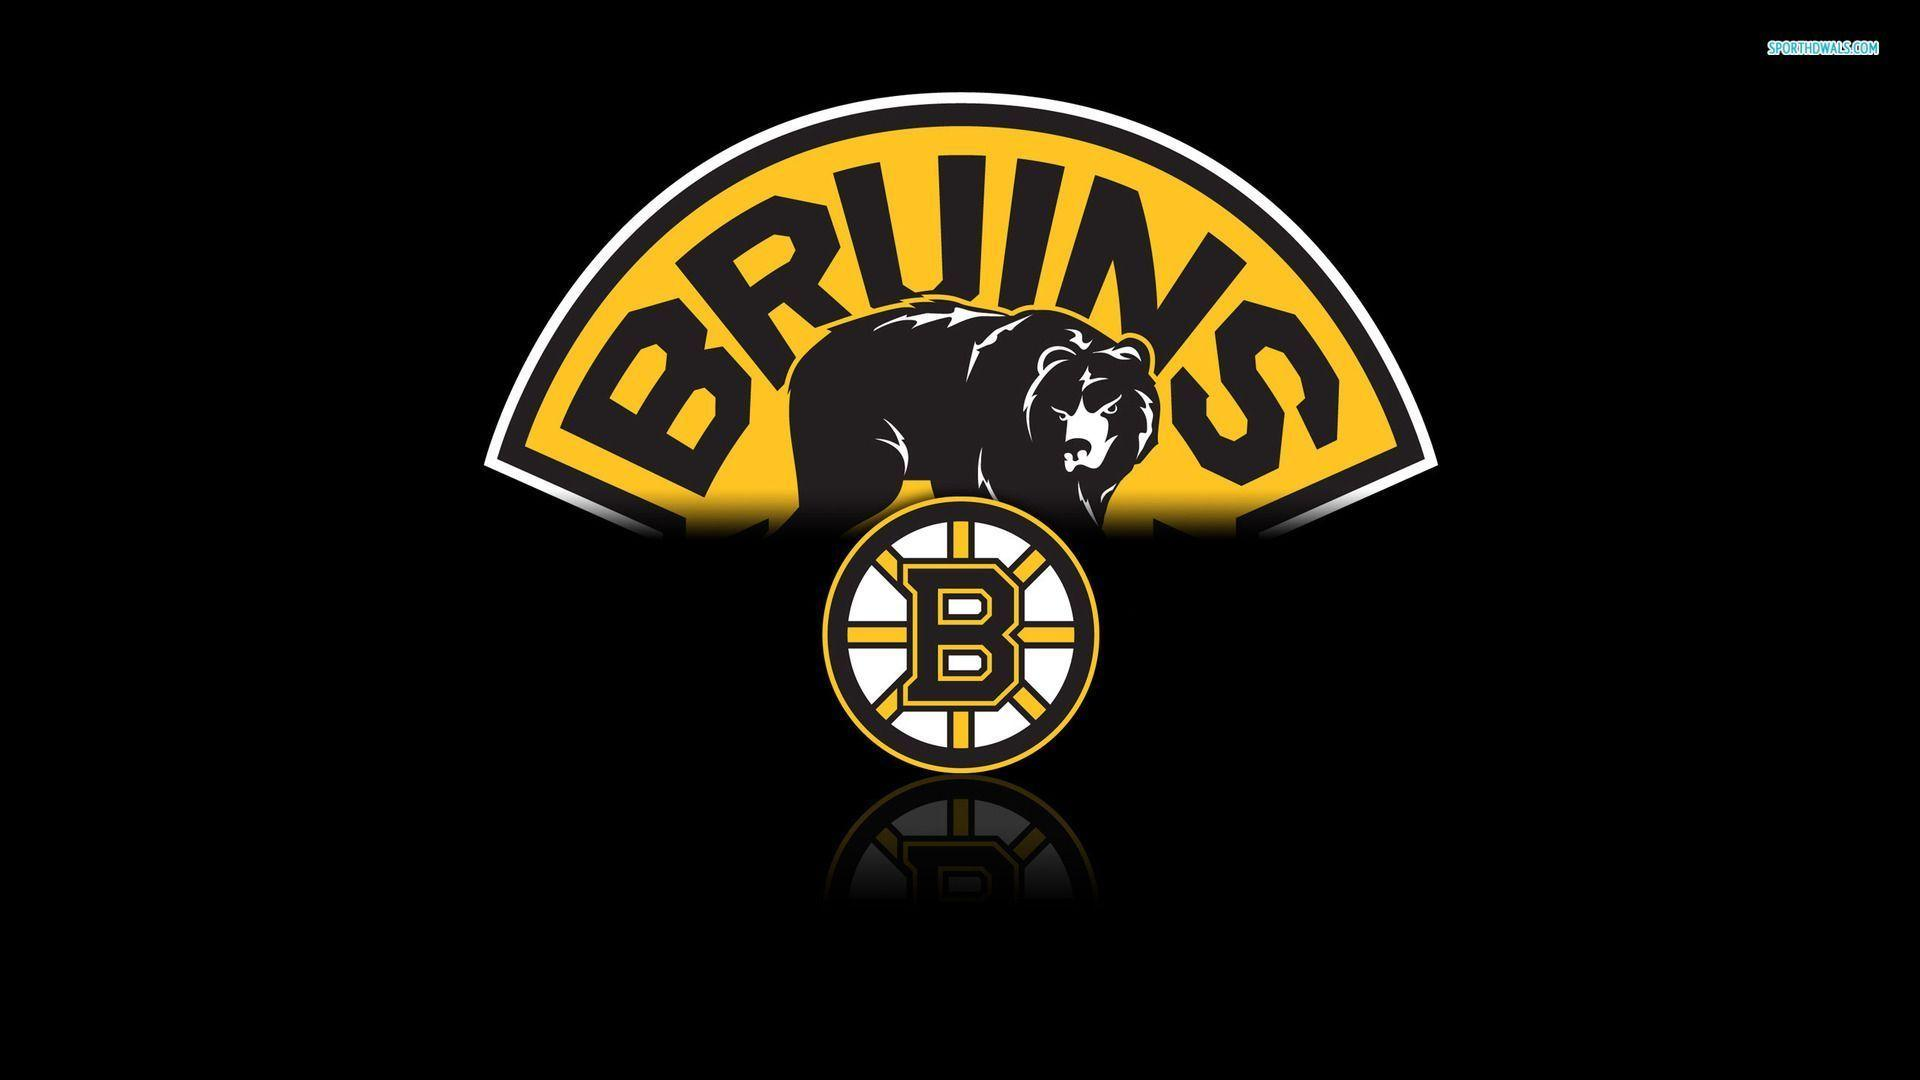 Boston Bruins wallpapers | Boston Bruins background - Page 6